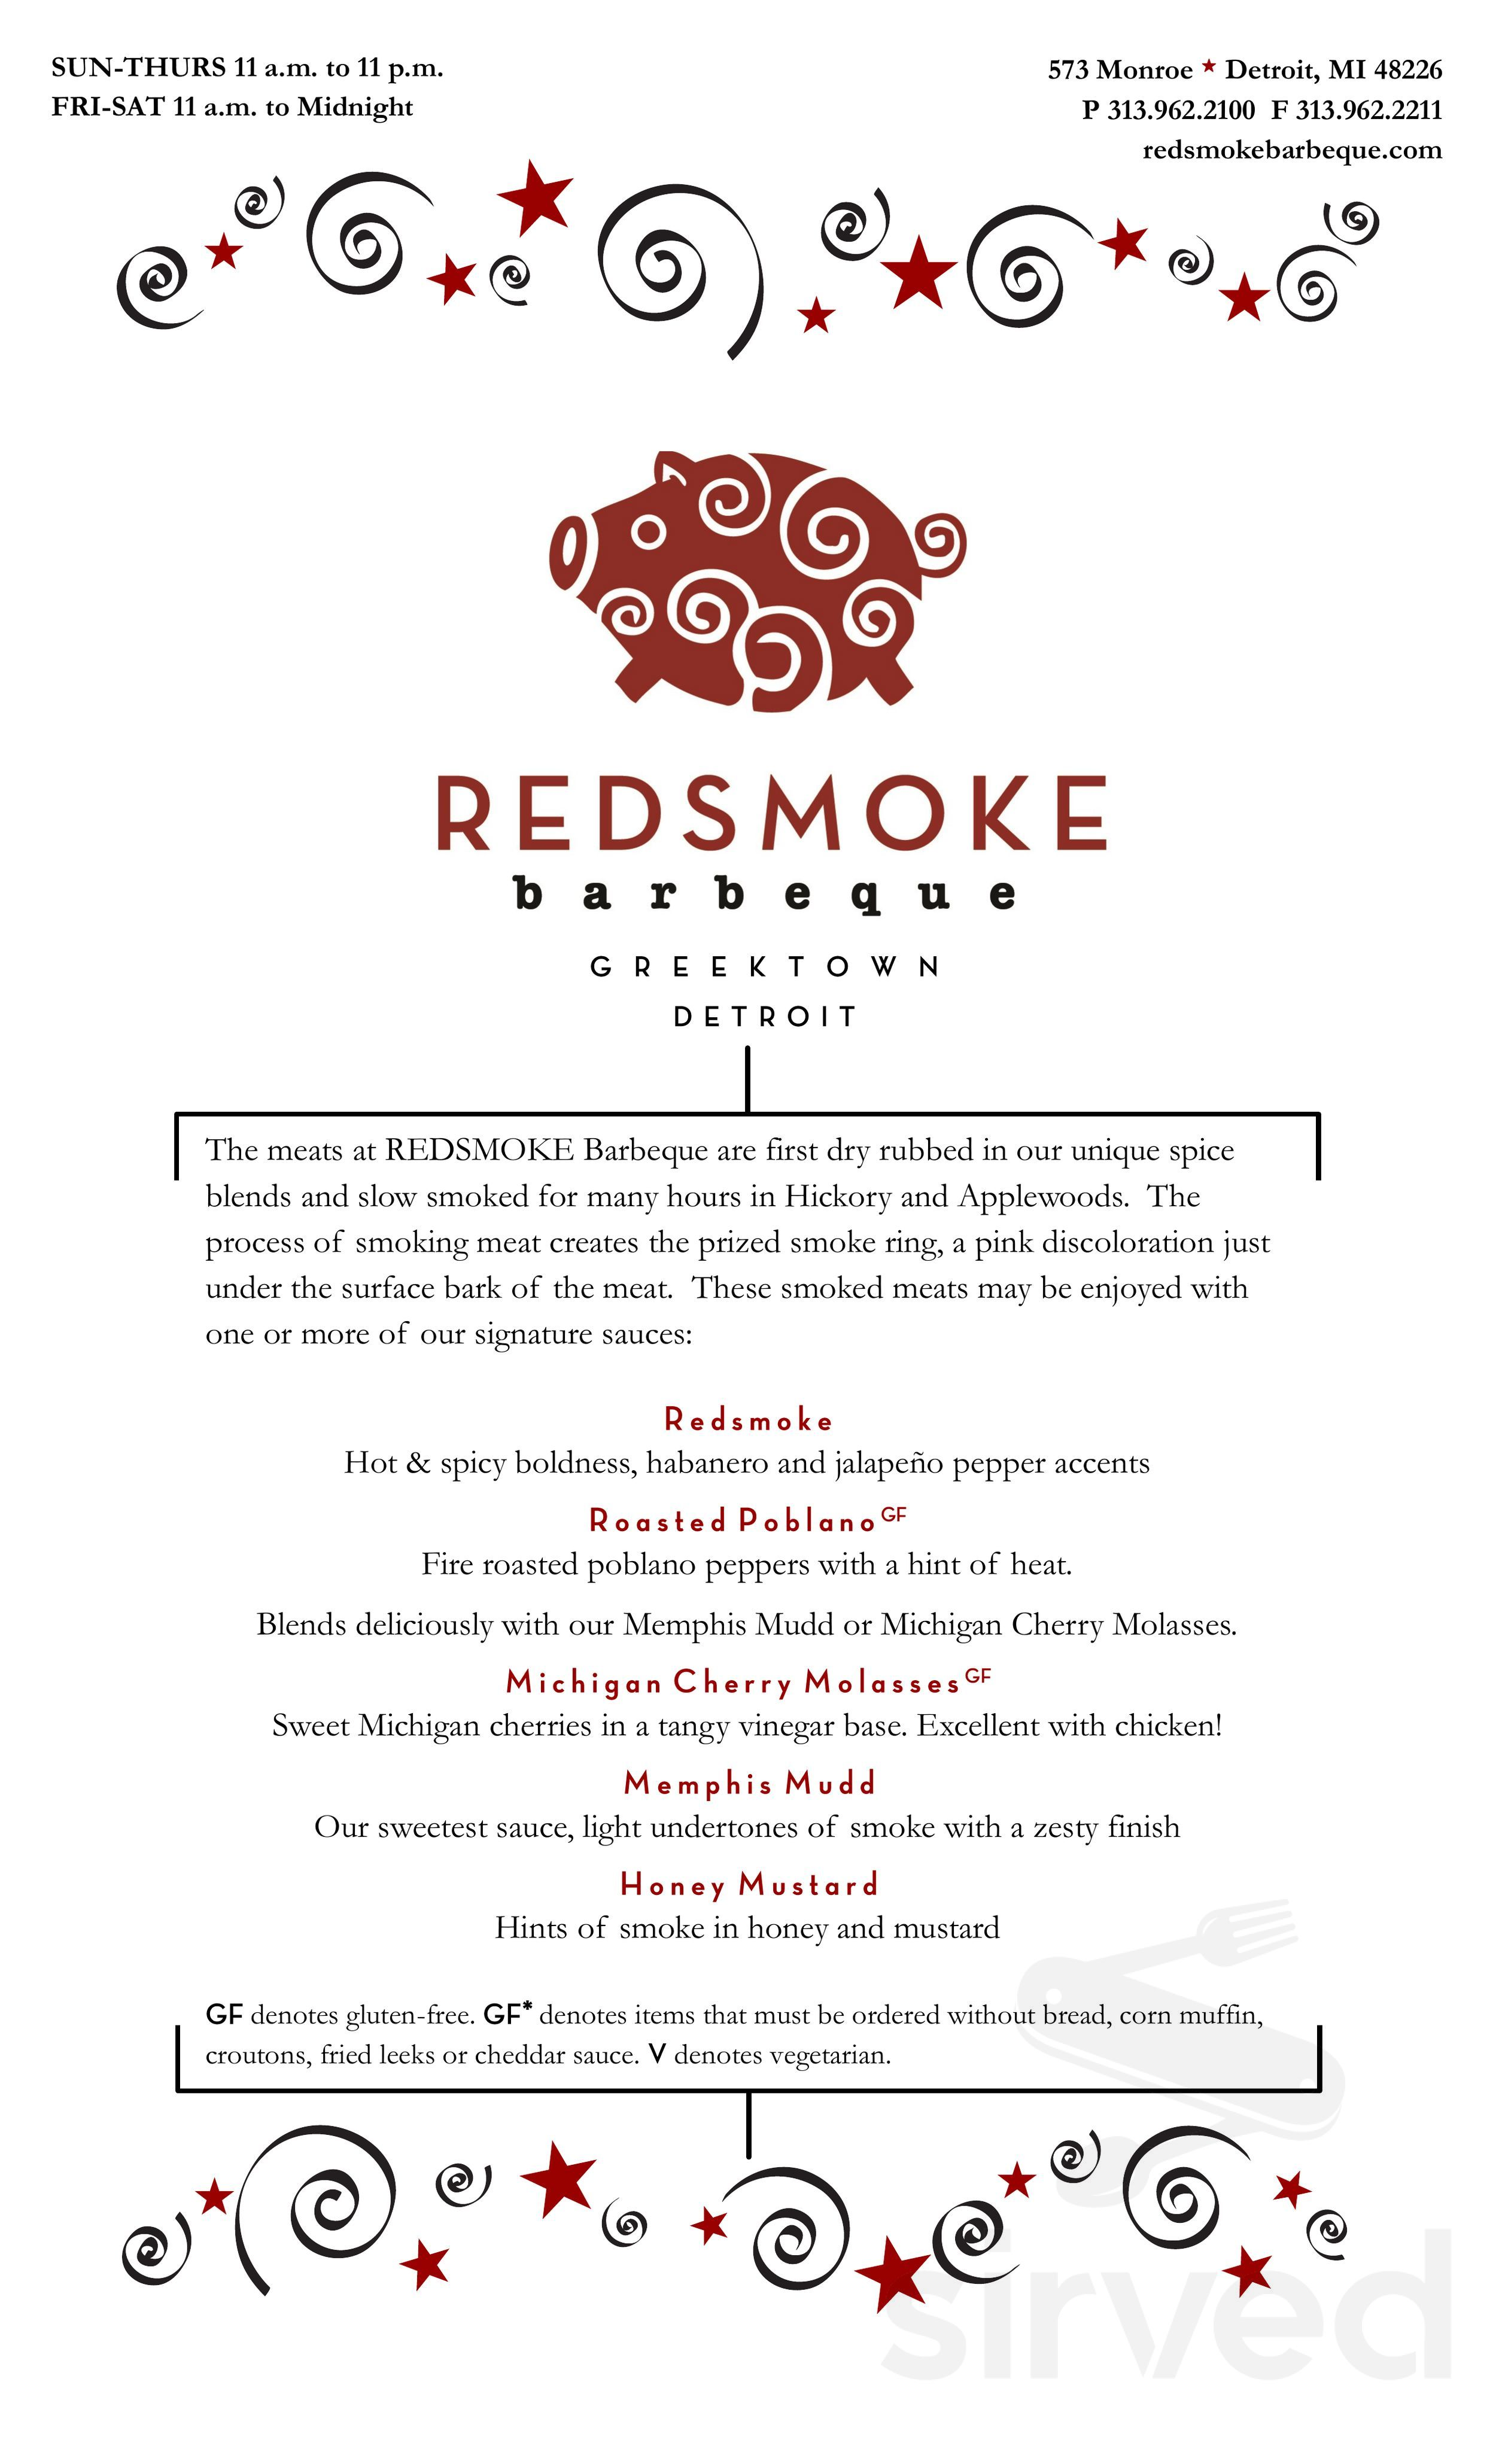 Menu for Red Smoke Barbecue in Detroit, Michigan, USA